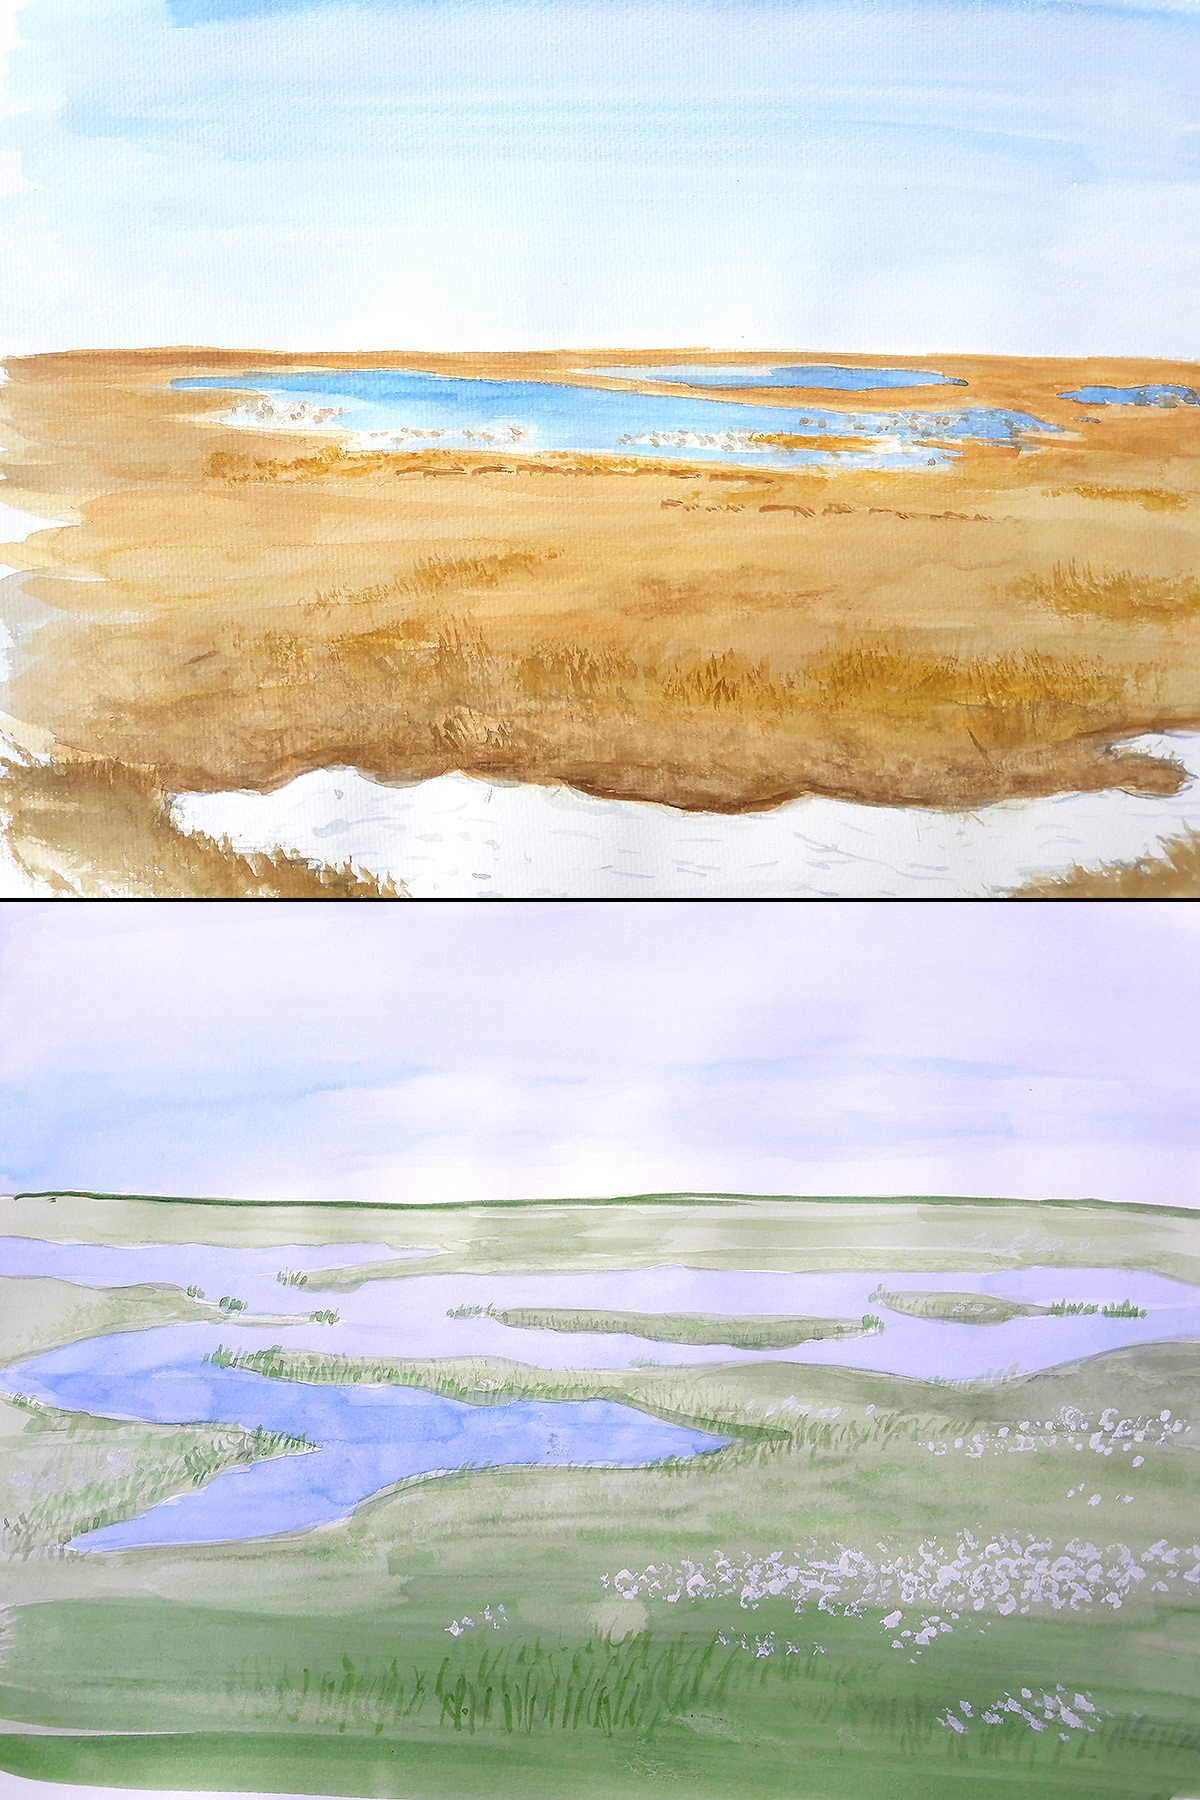 Tundra after snowmelt (June) and at height of summer (August). (Louis-Jean Germain)